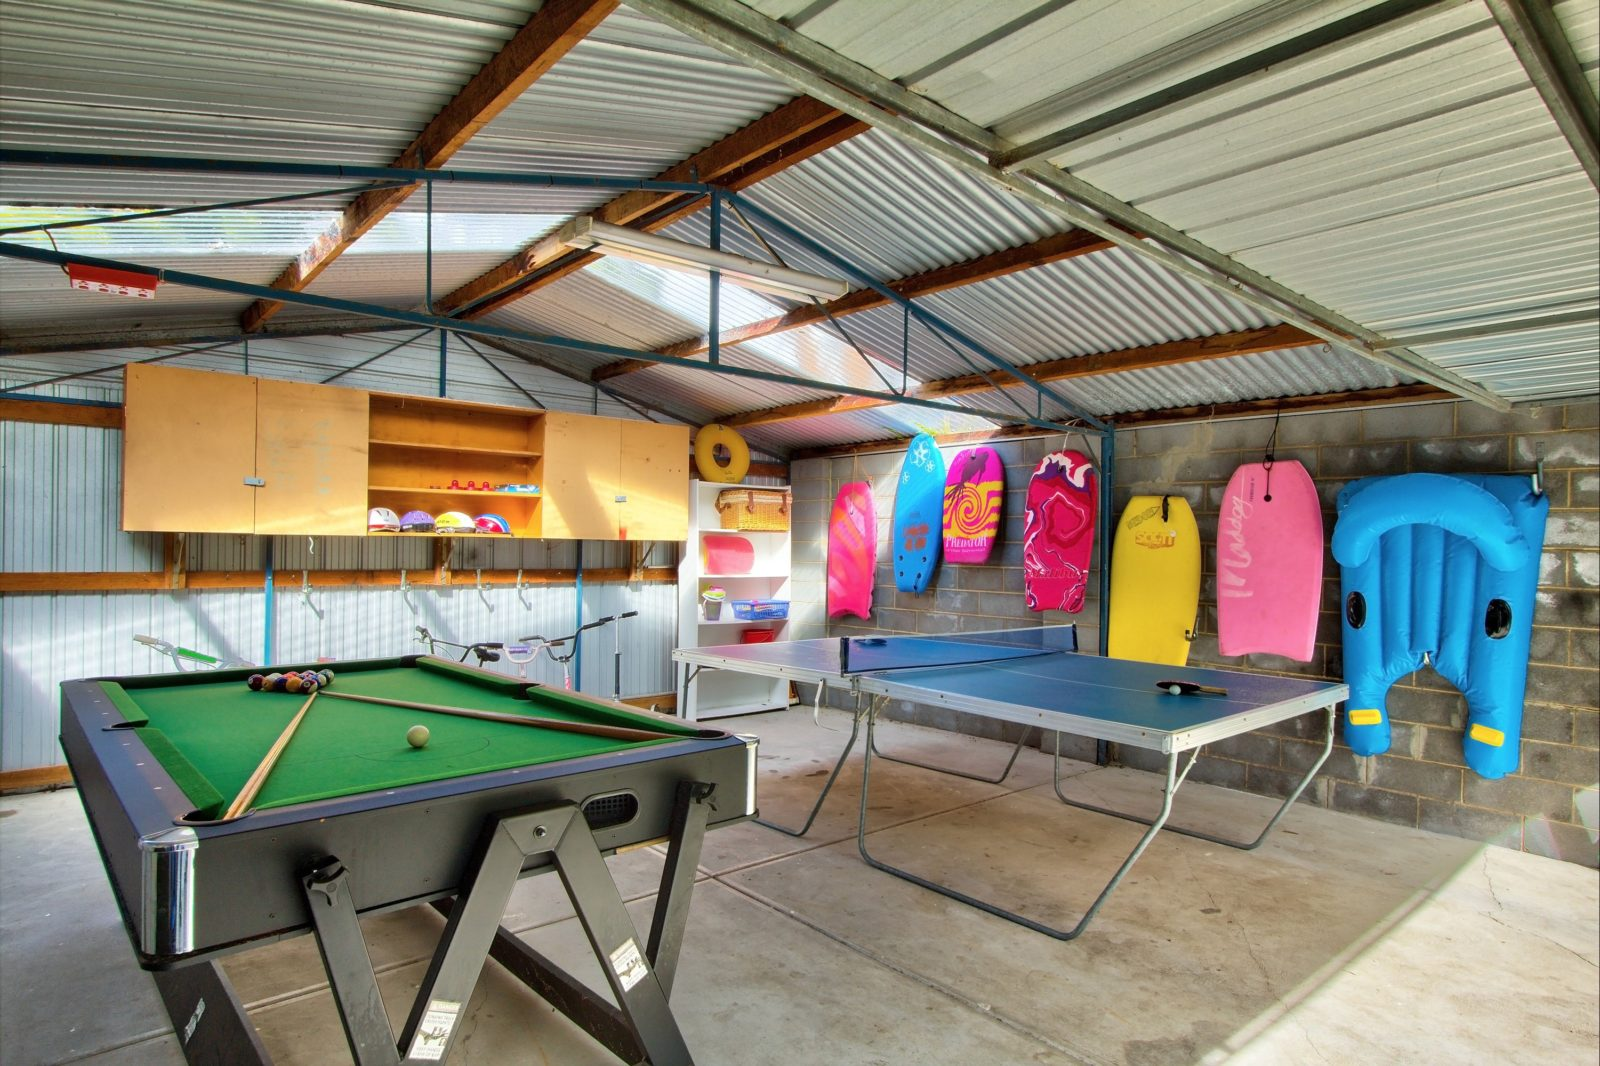 Outdoor games room with pool table, air hockey, table tennis, little bikes and scooters.